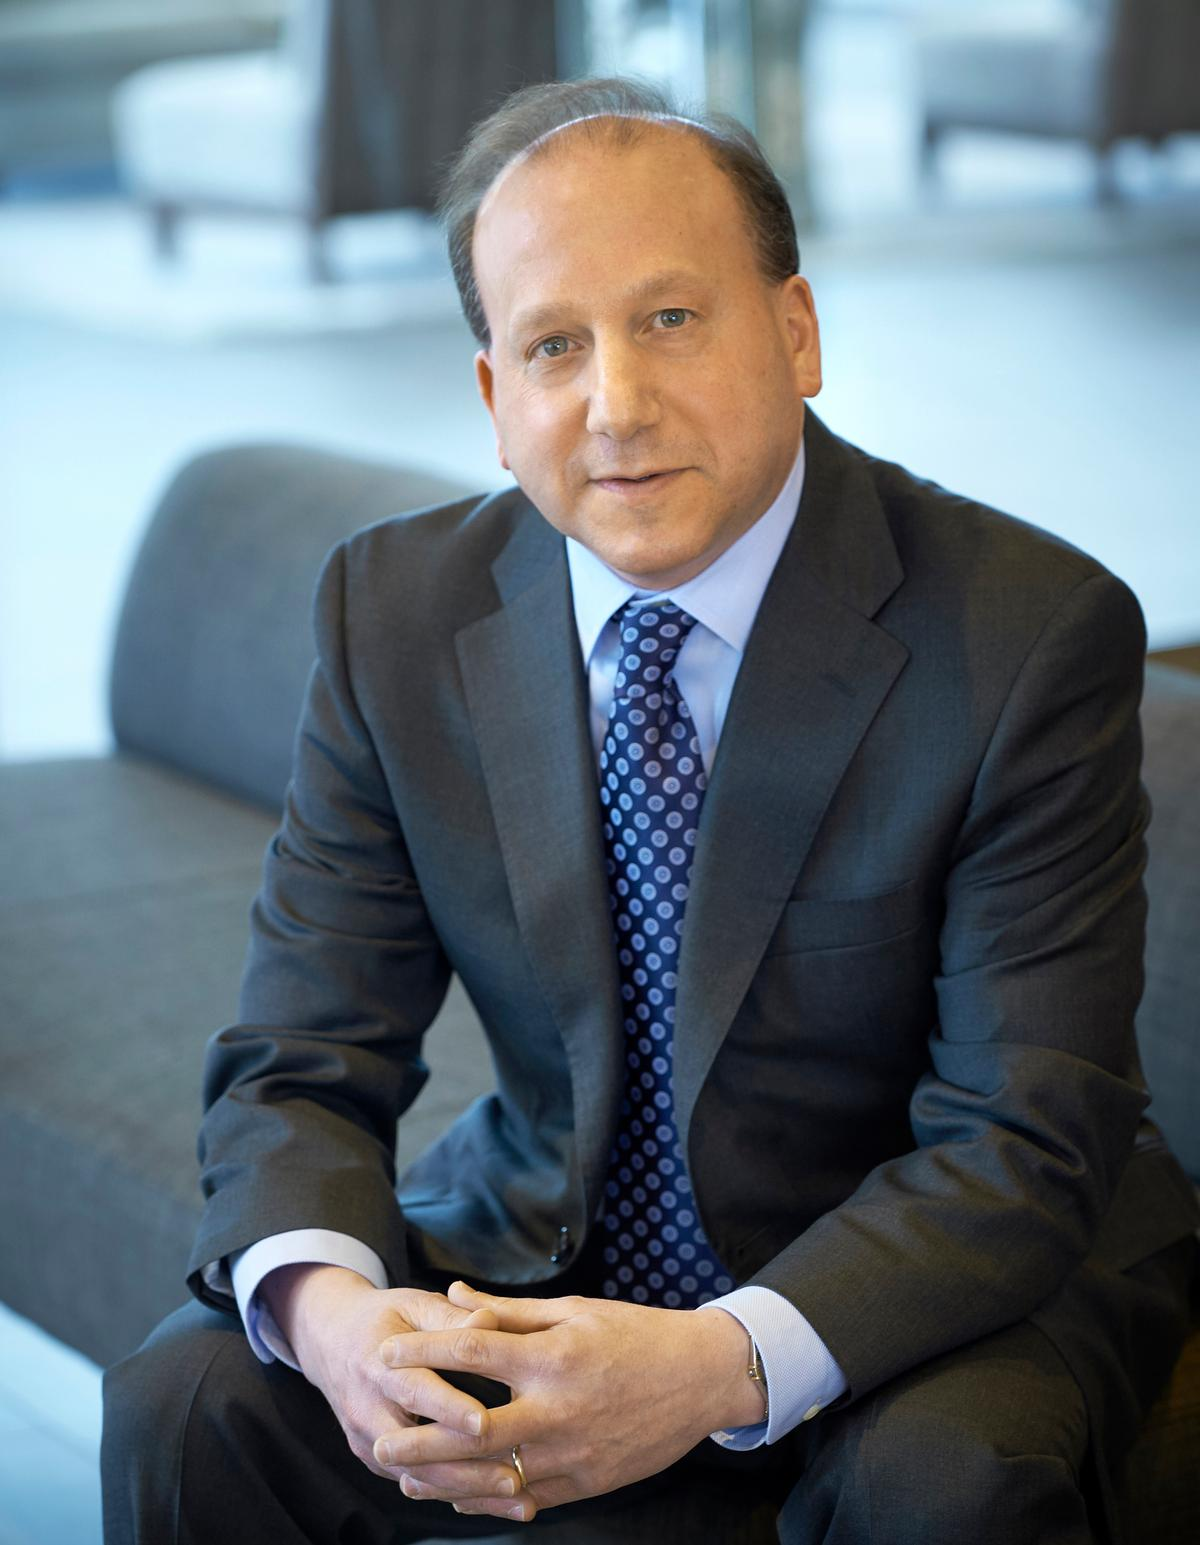 Barry Goldstein (pictured) stated that WTS International is uniquely positioned in the industry with best-in-class hospitality and amenity services